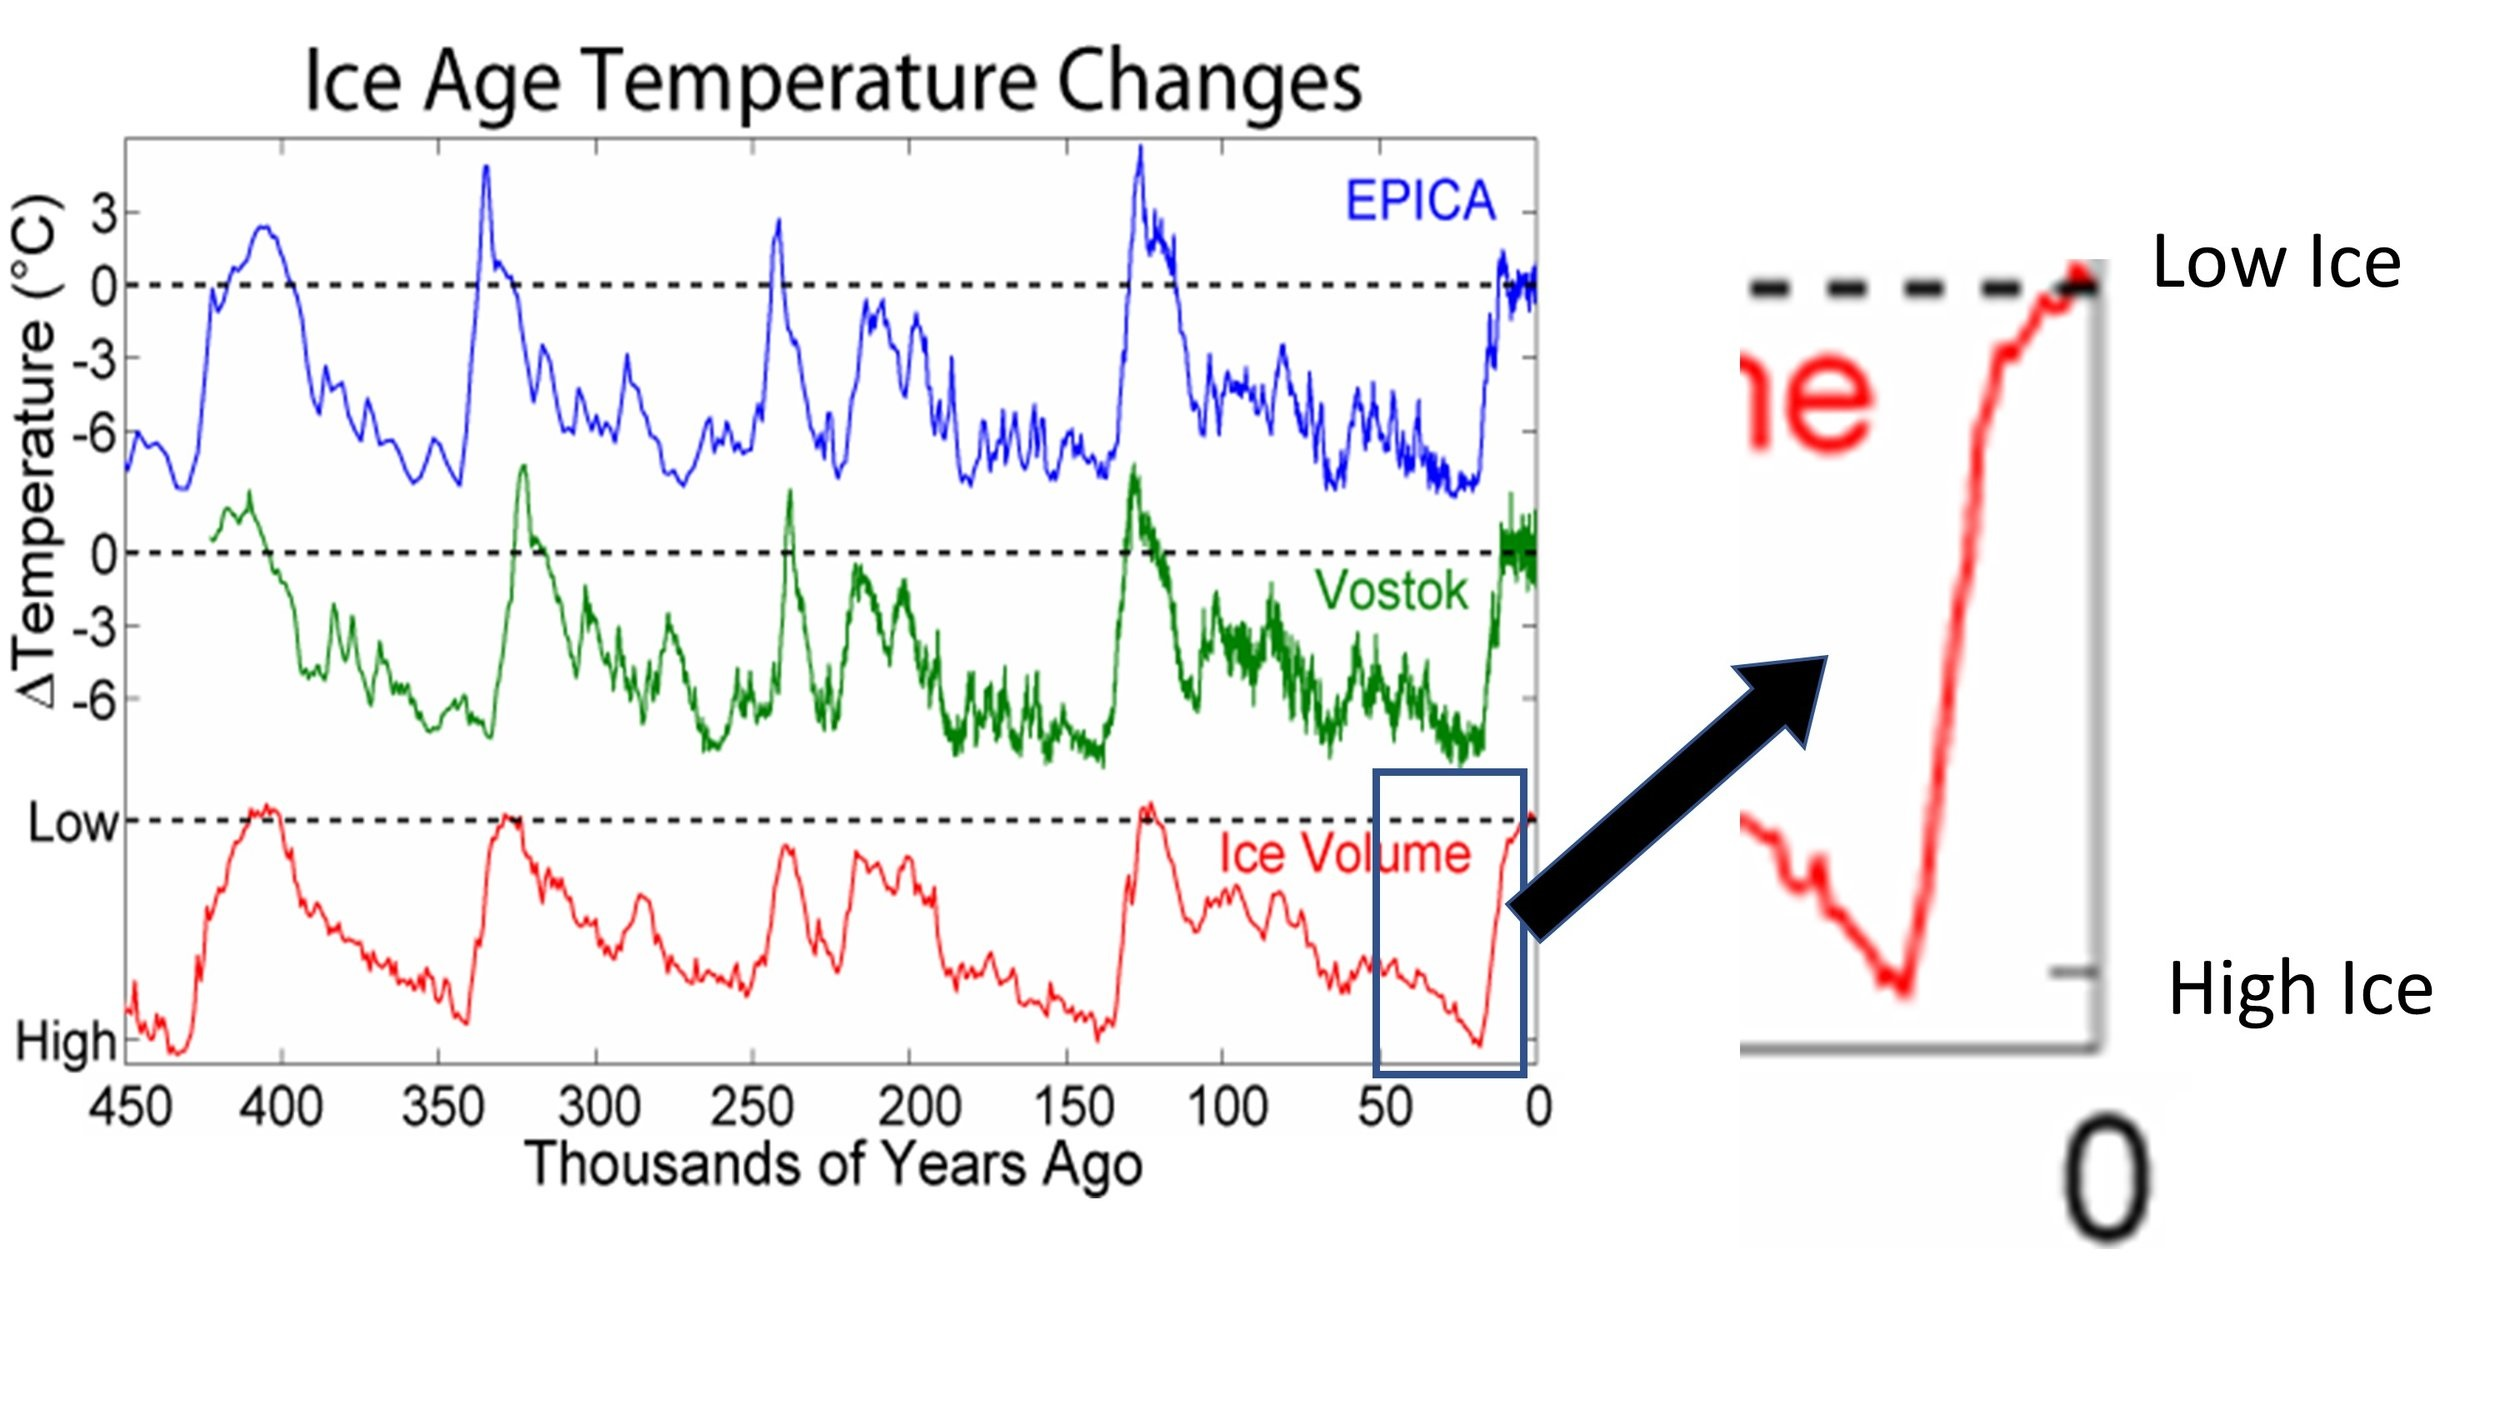 Figure 2. Changes in Antarctic temperatures (at 2 stations) and global ice volume (4).